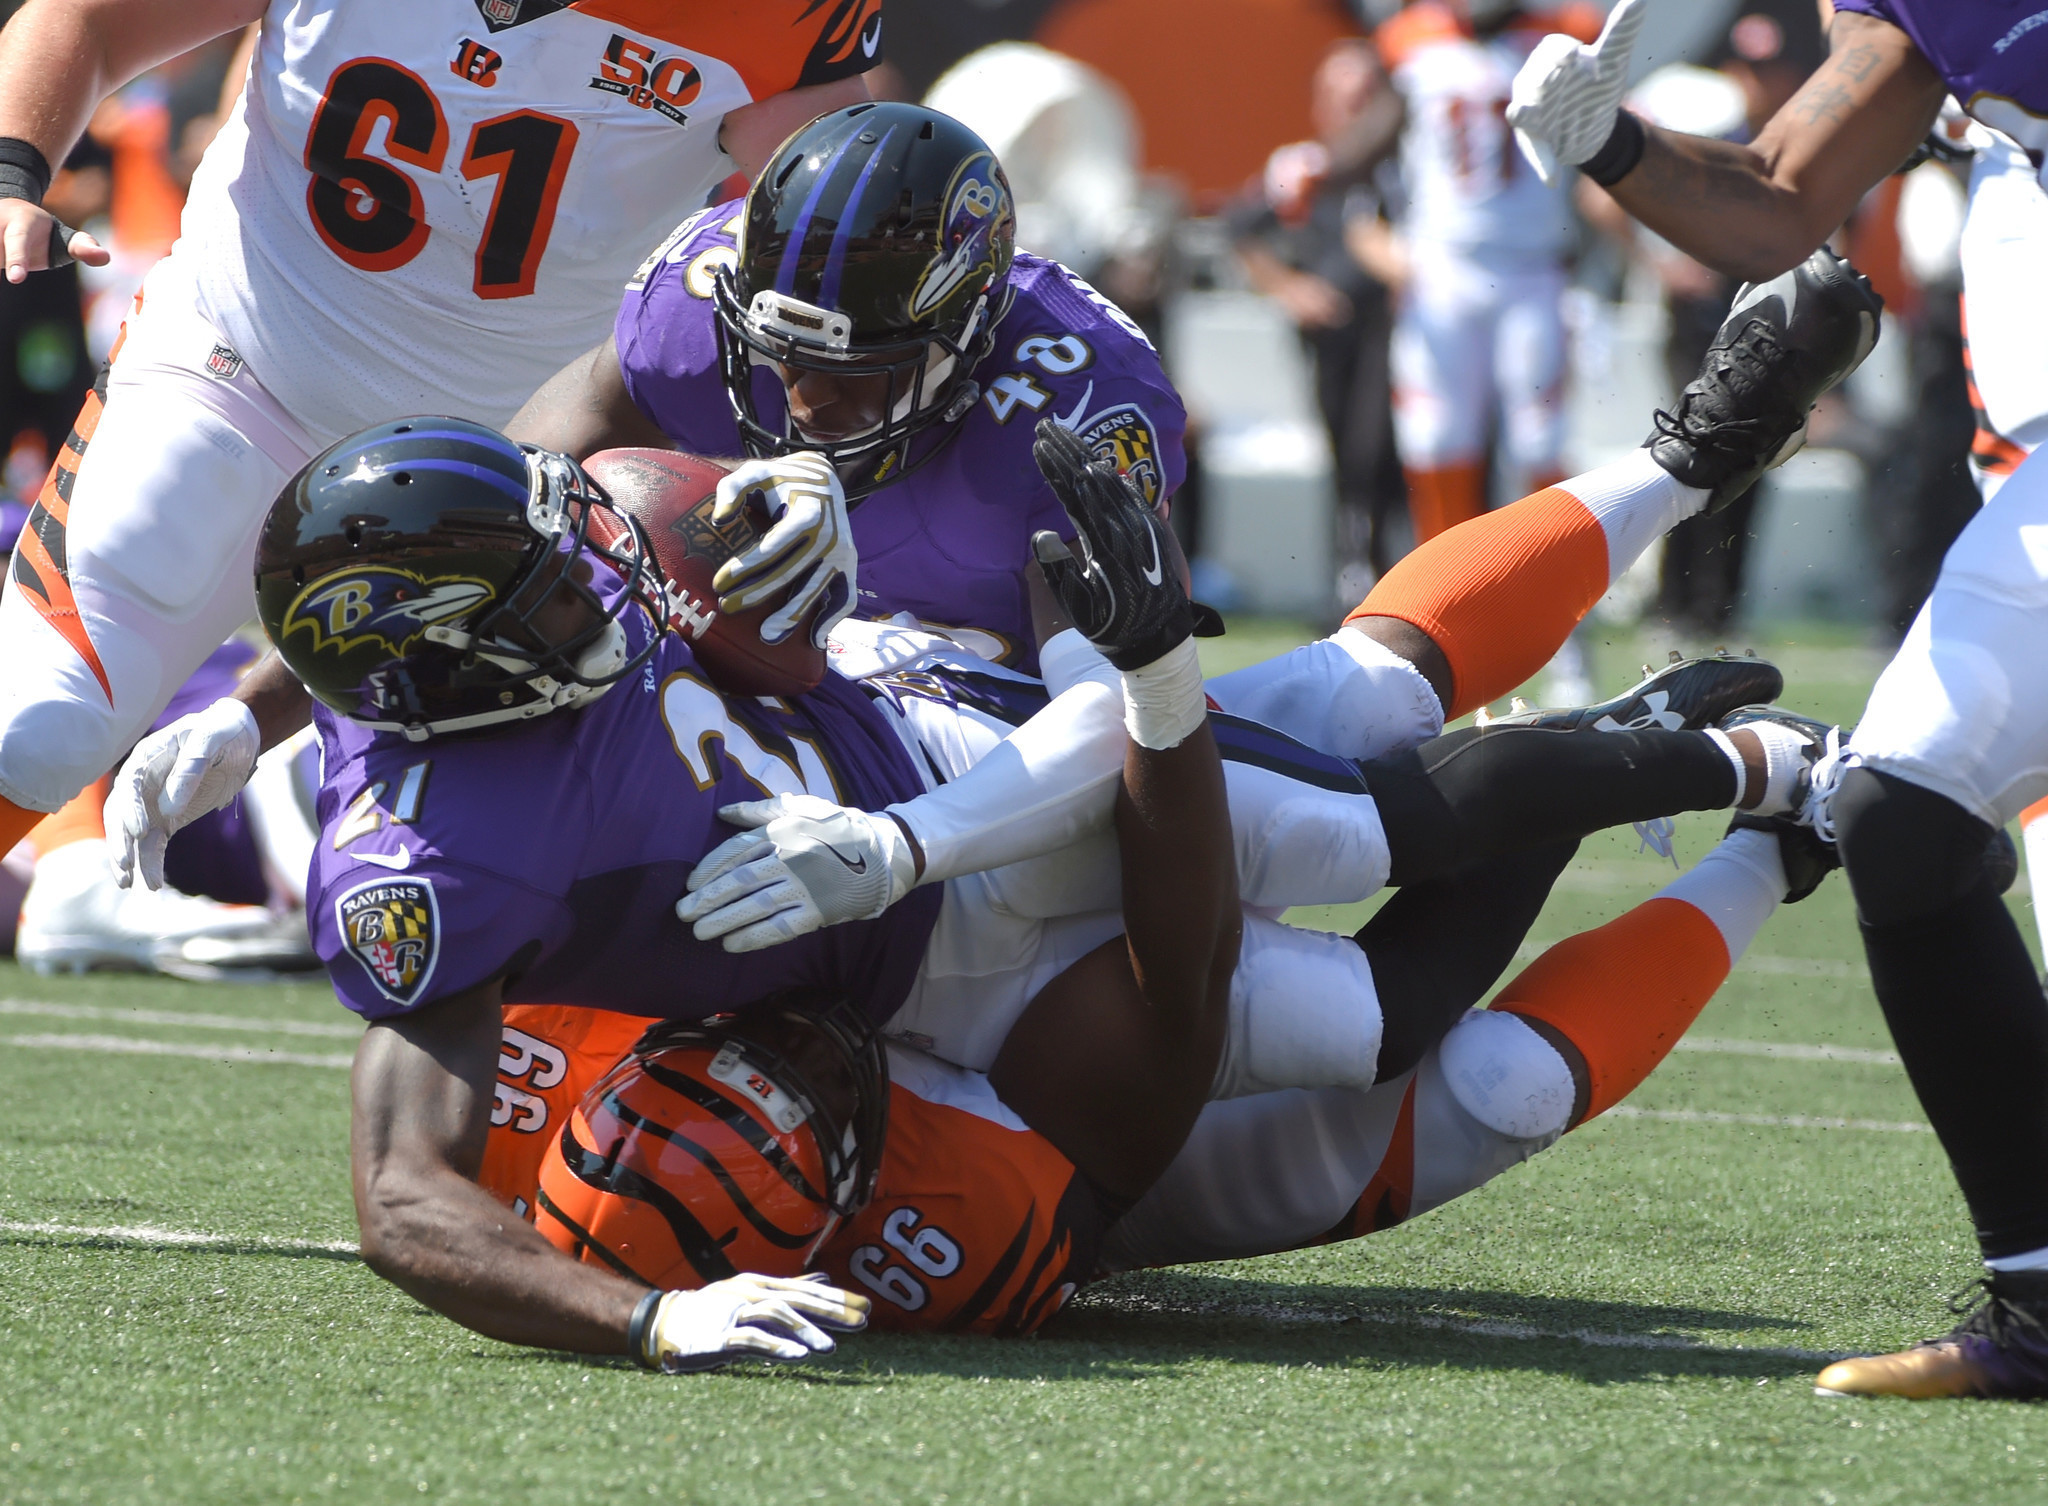 Bal-mike-preston-s-report-card-after-the-ravens-20-0-win-over-the-bengals-20170910